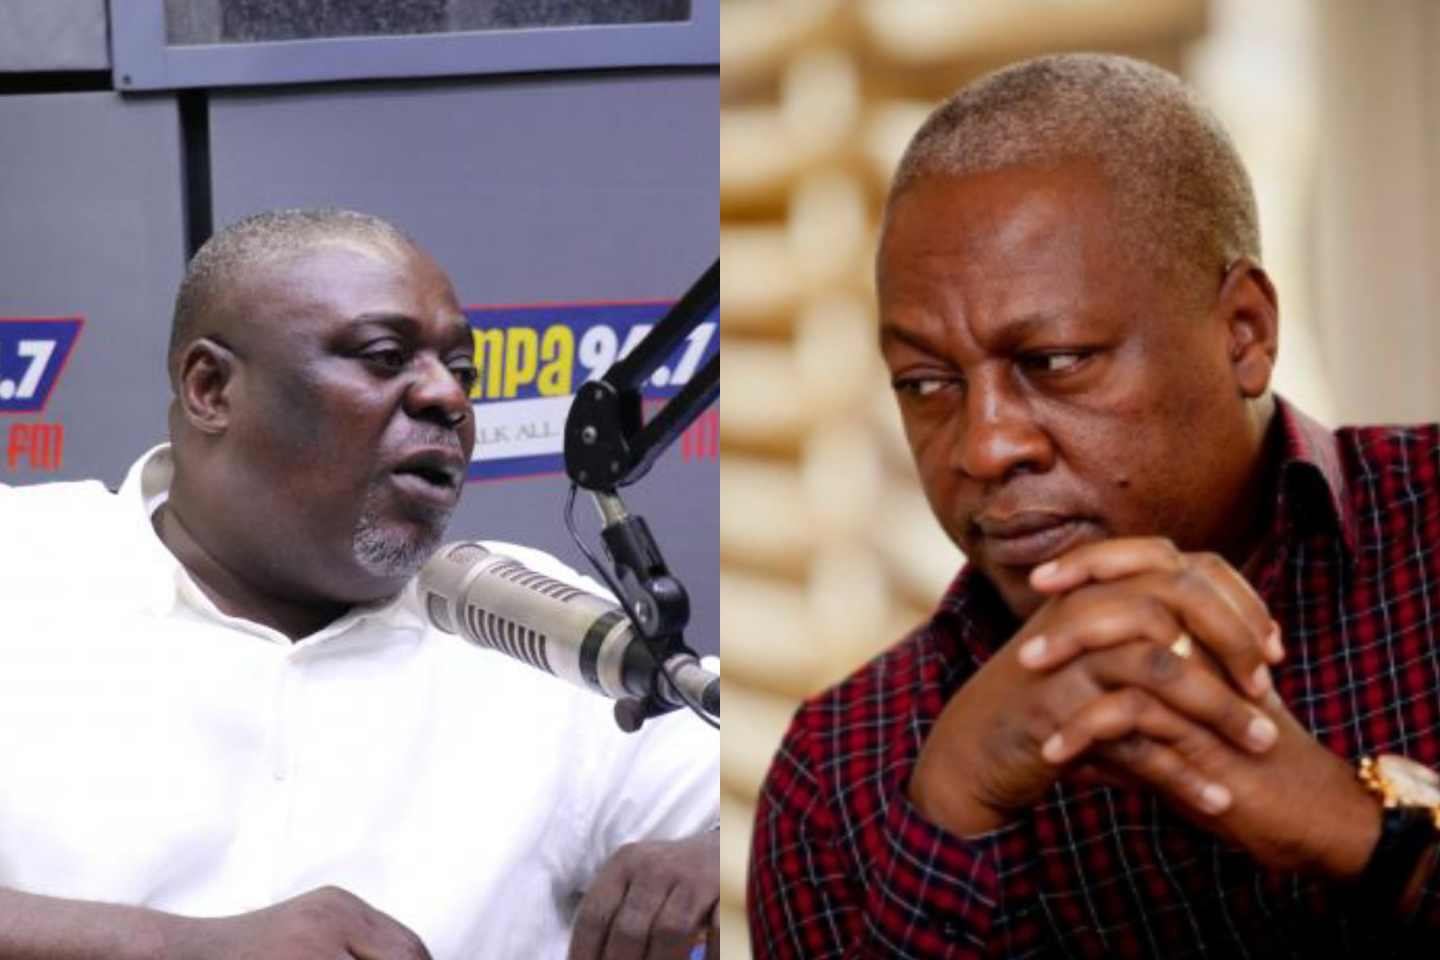 Election Petition: So Mahama thought he would  have become President after what happened in 2013? – Koku Anyidoho quizzes